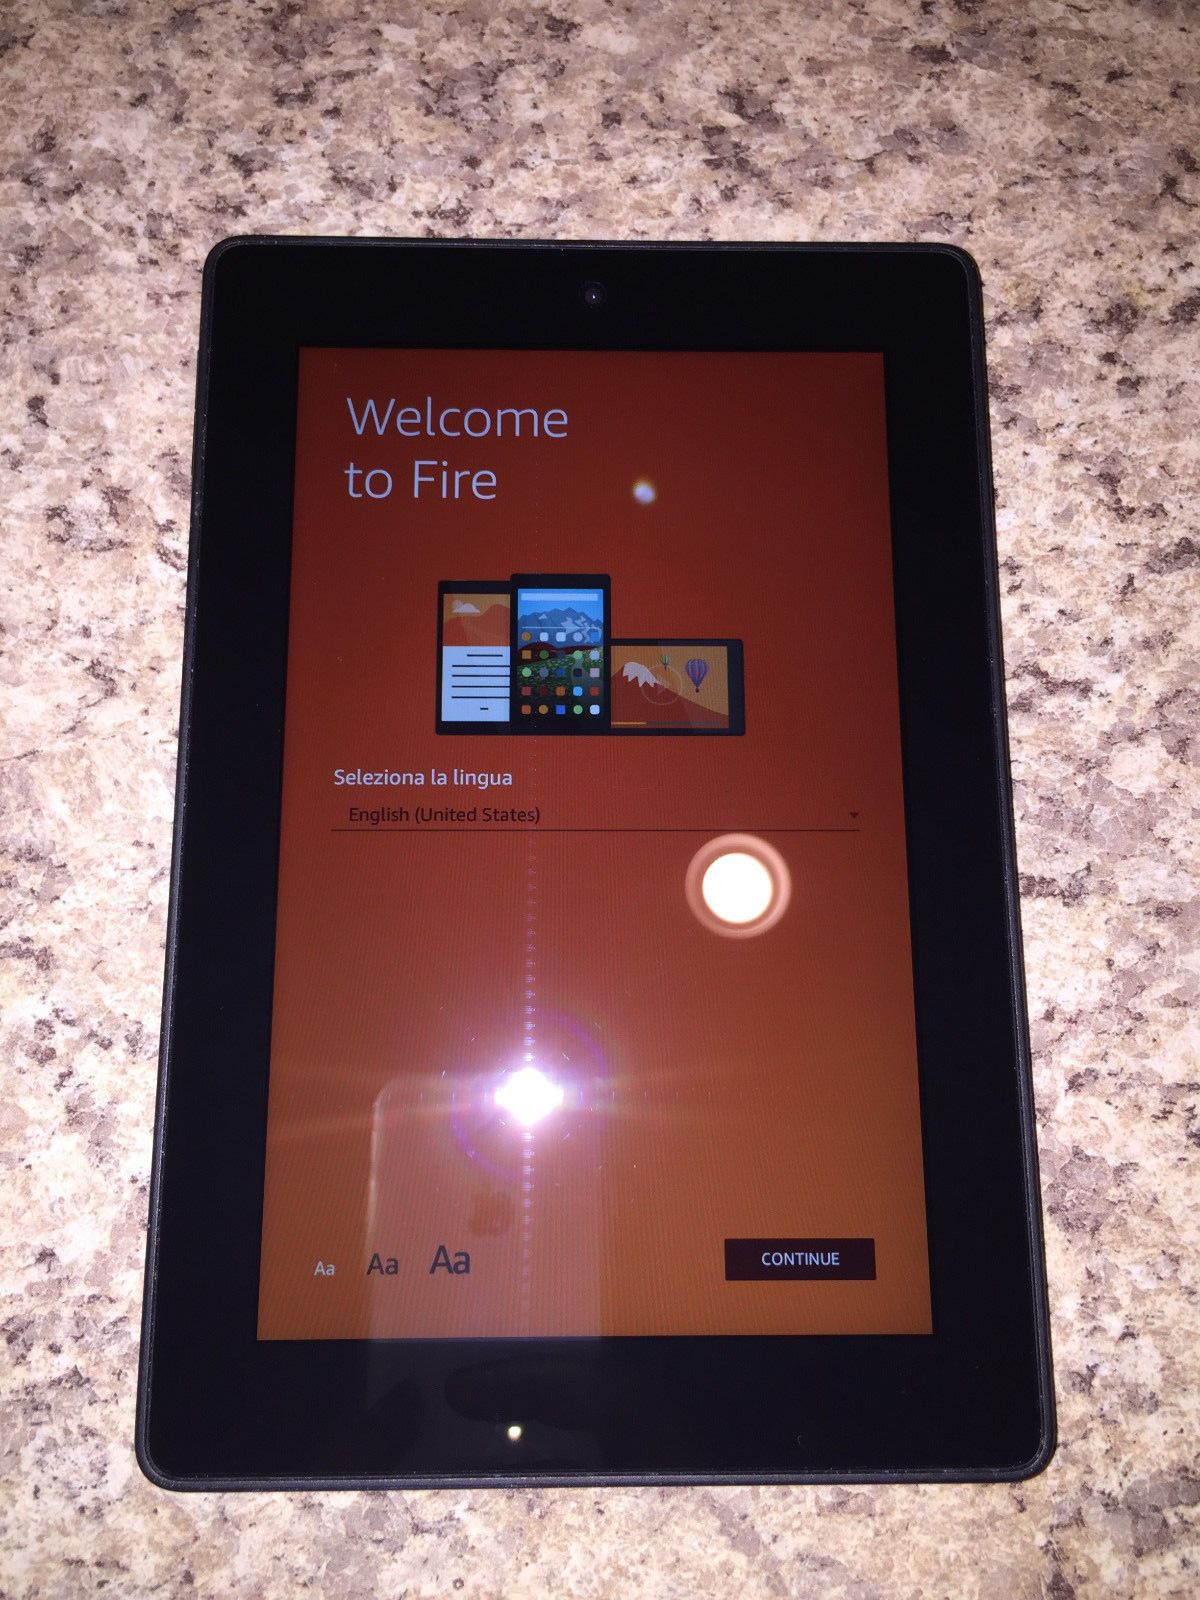 Amazon Kindle Fire HD 7 (4th Gen Generation) Tablet - 8GB - Excellent Condition https://t.co/gGQFk7mgWd https://t.co/azy9wJkYTs